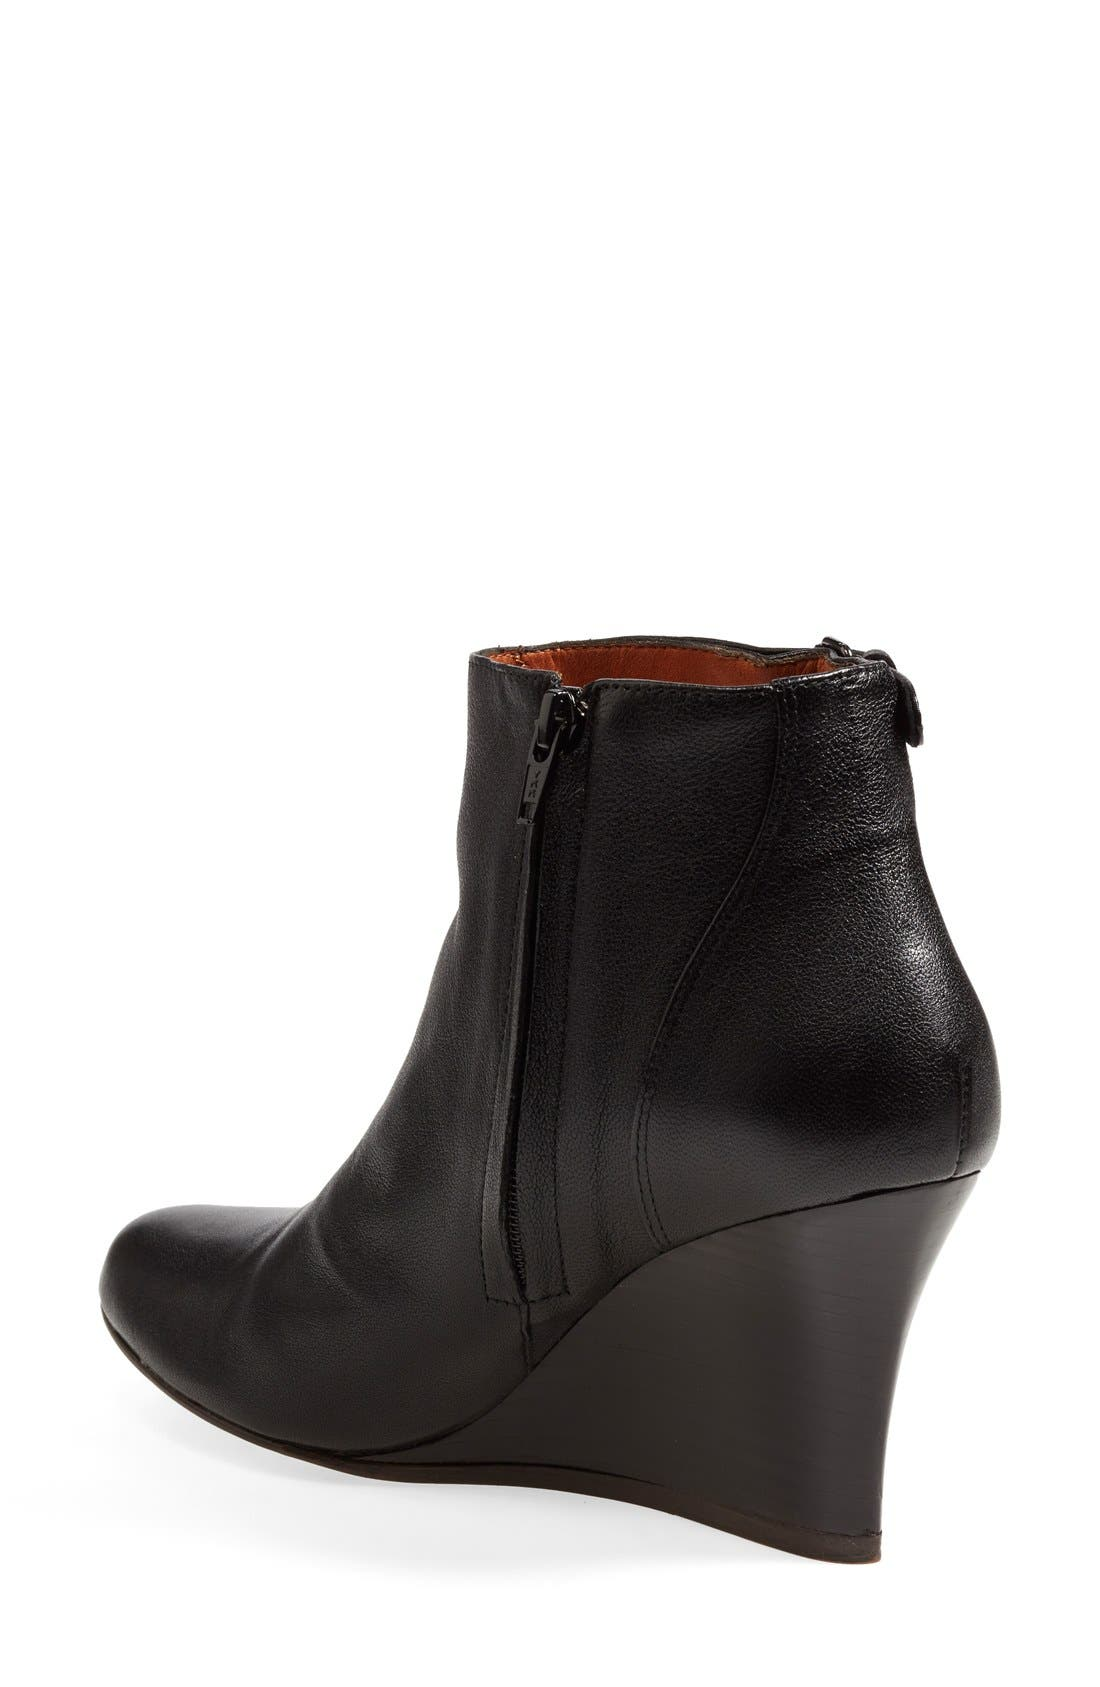 Alternate Image 2  - Lanvin Wedge Ankle Bootie (Women)